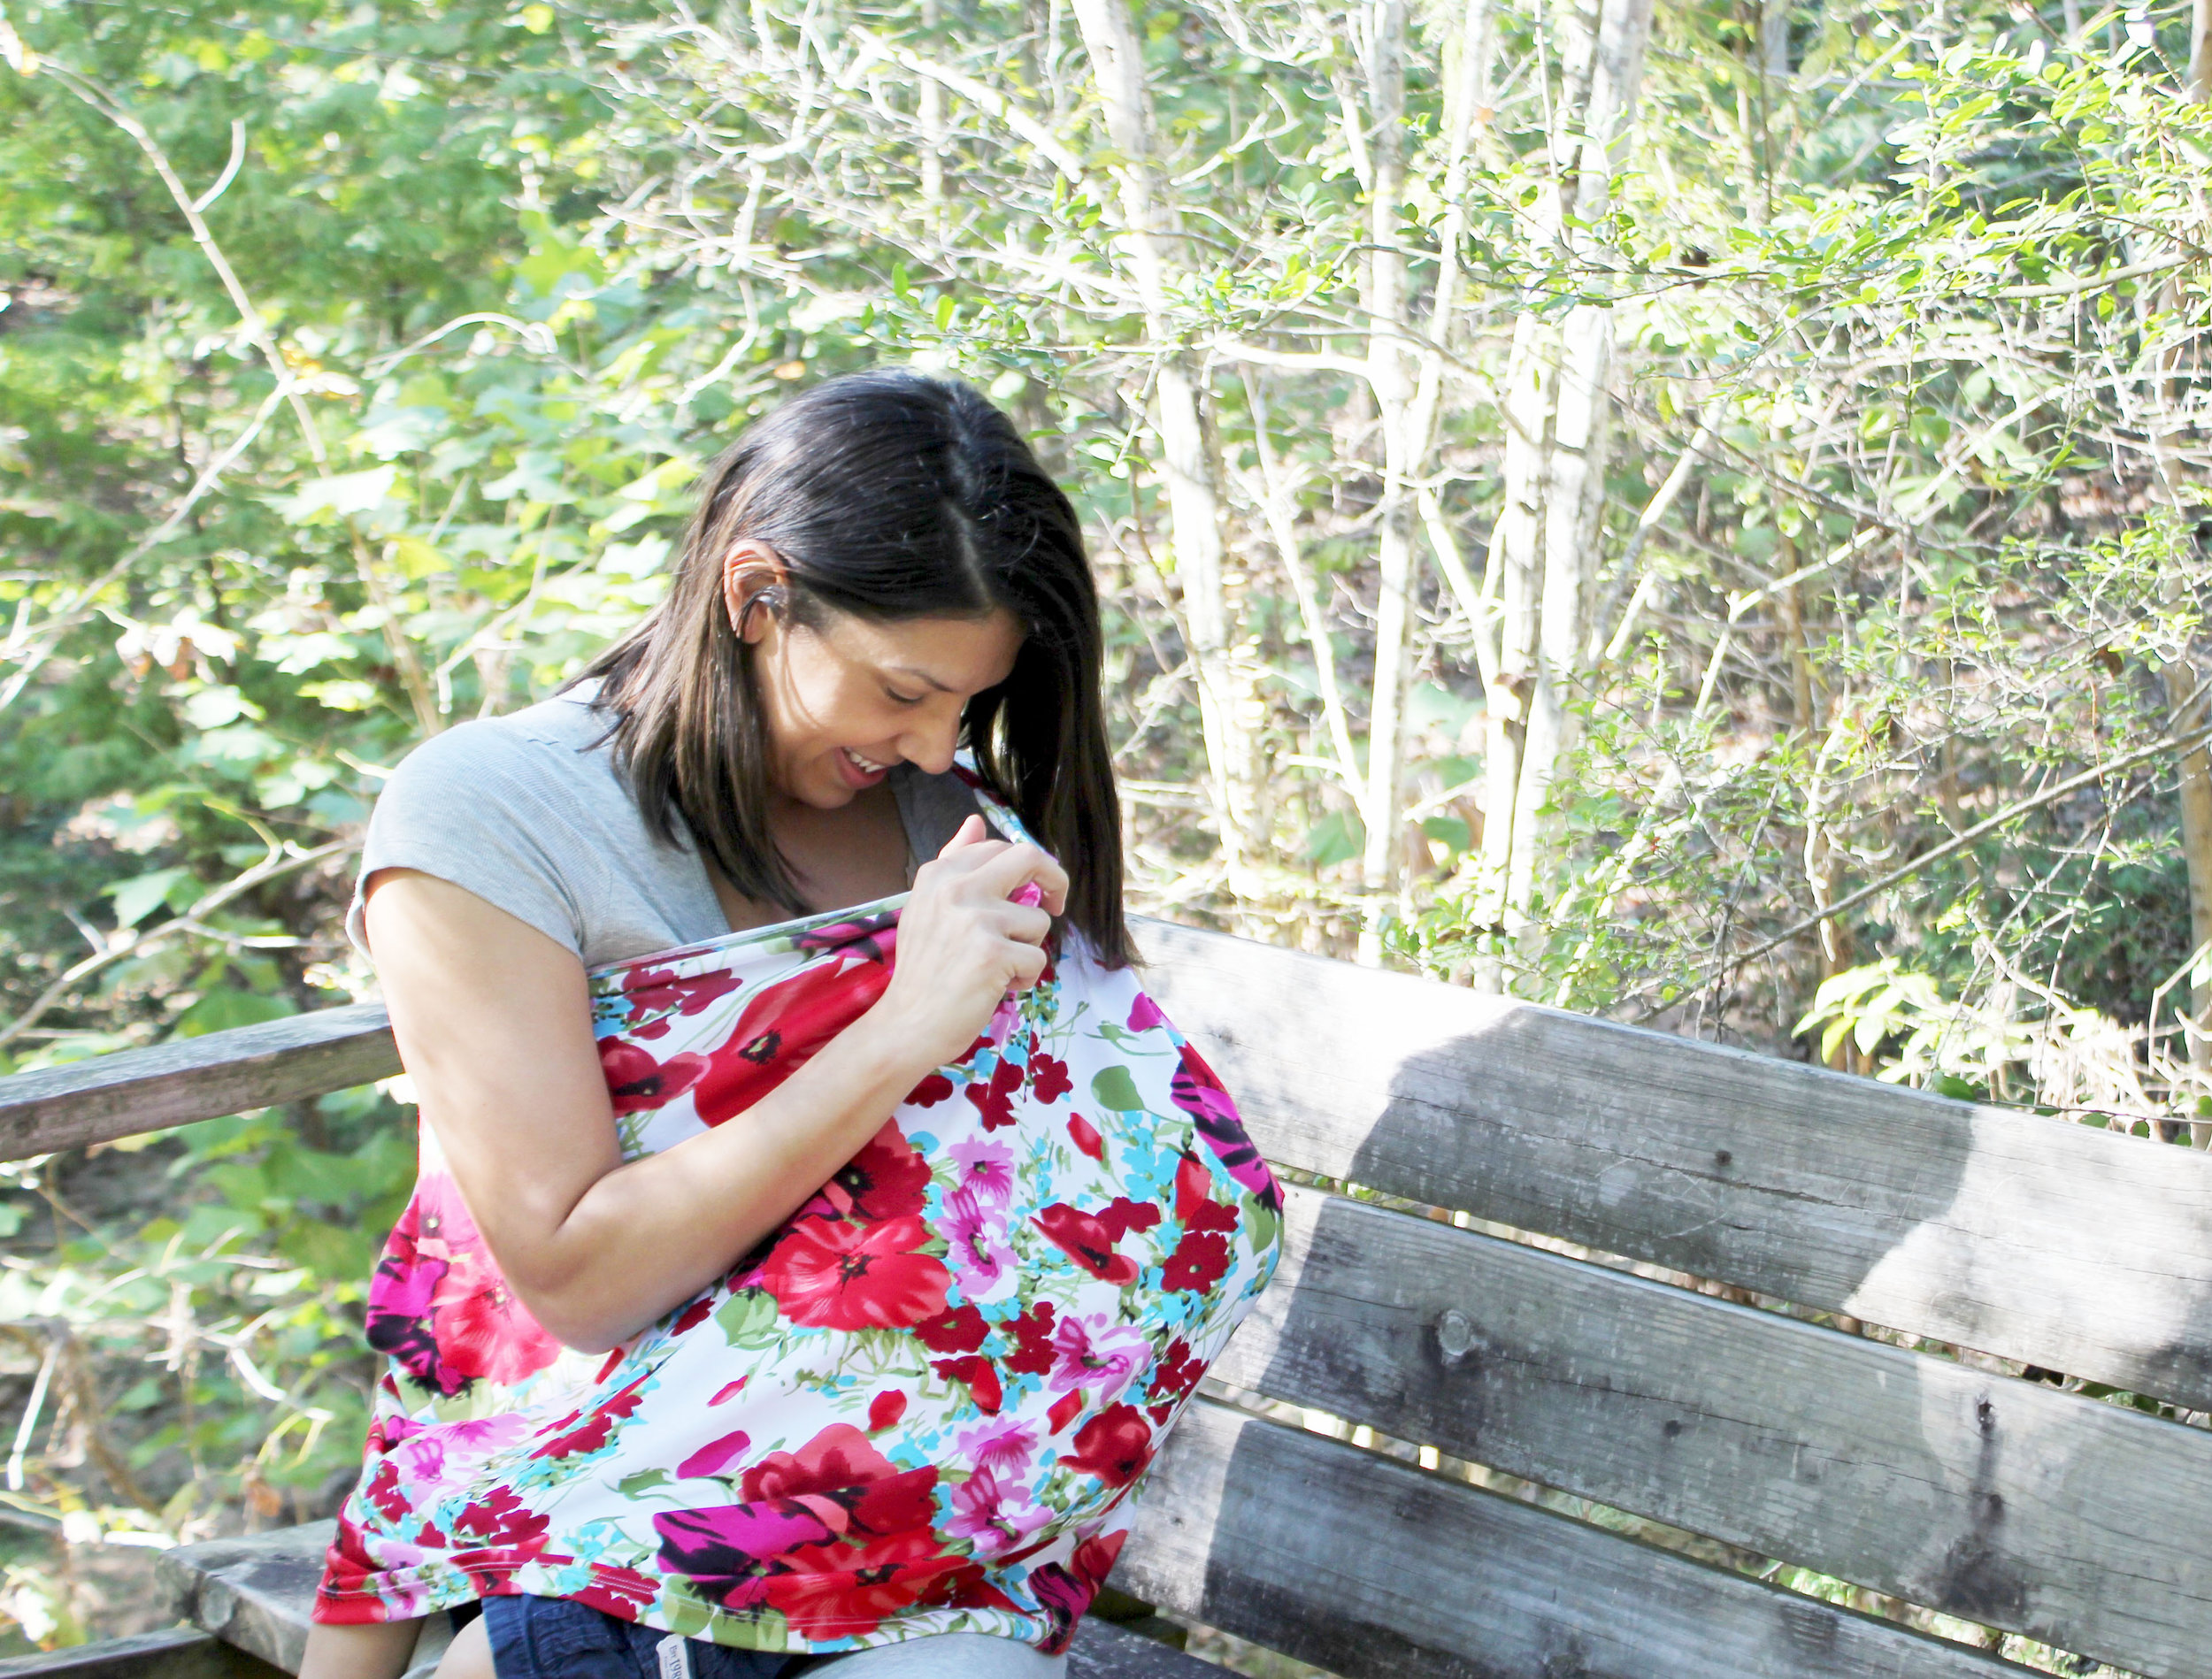 Cristina Polk Designs A Fashionable Way For Mother's To Breast Feed By Creating Cover With A Cause, Lil Haven